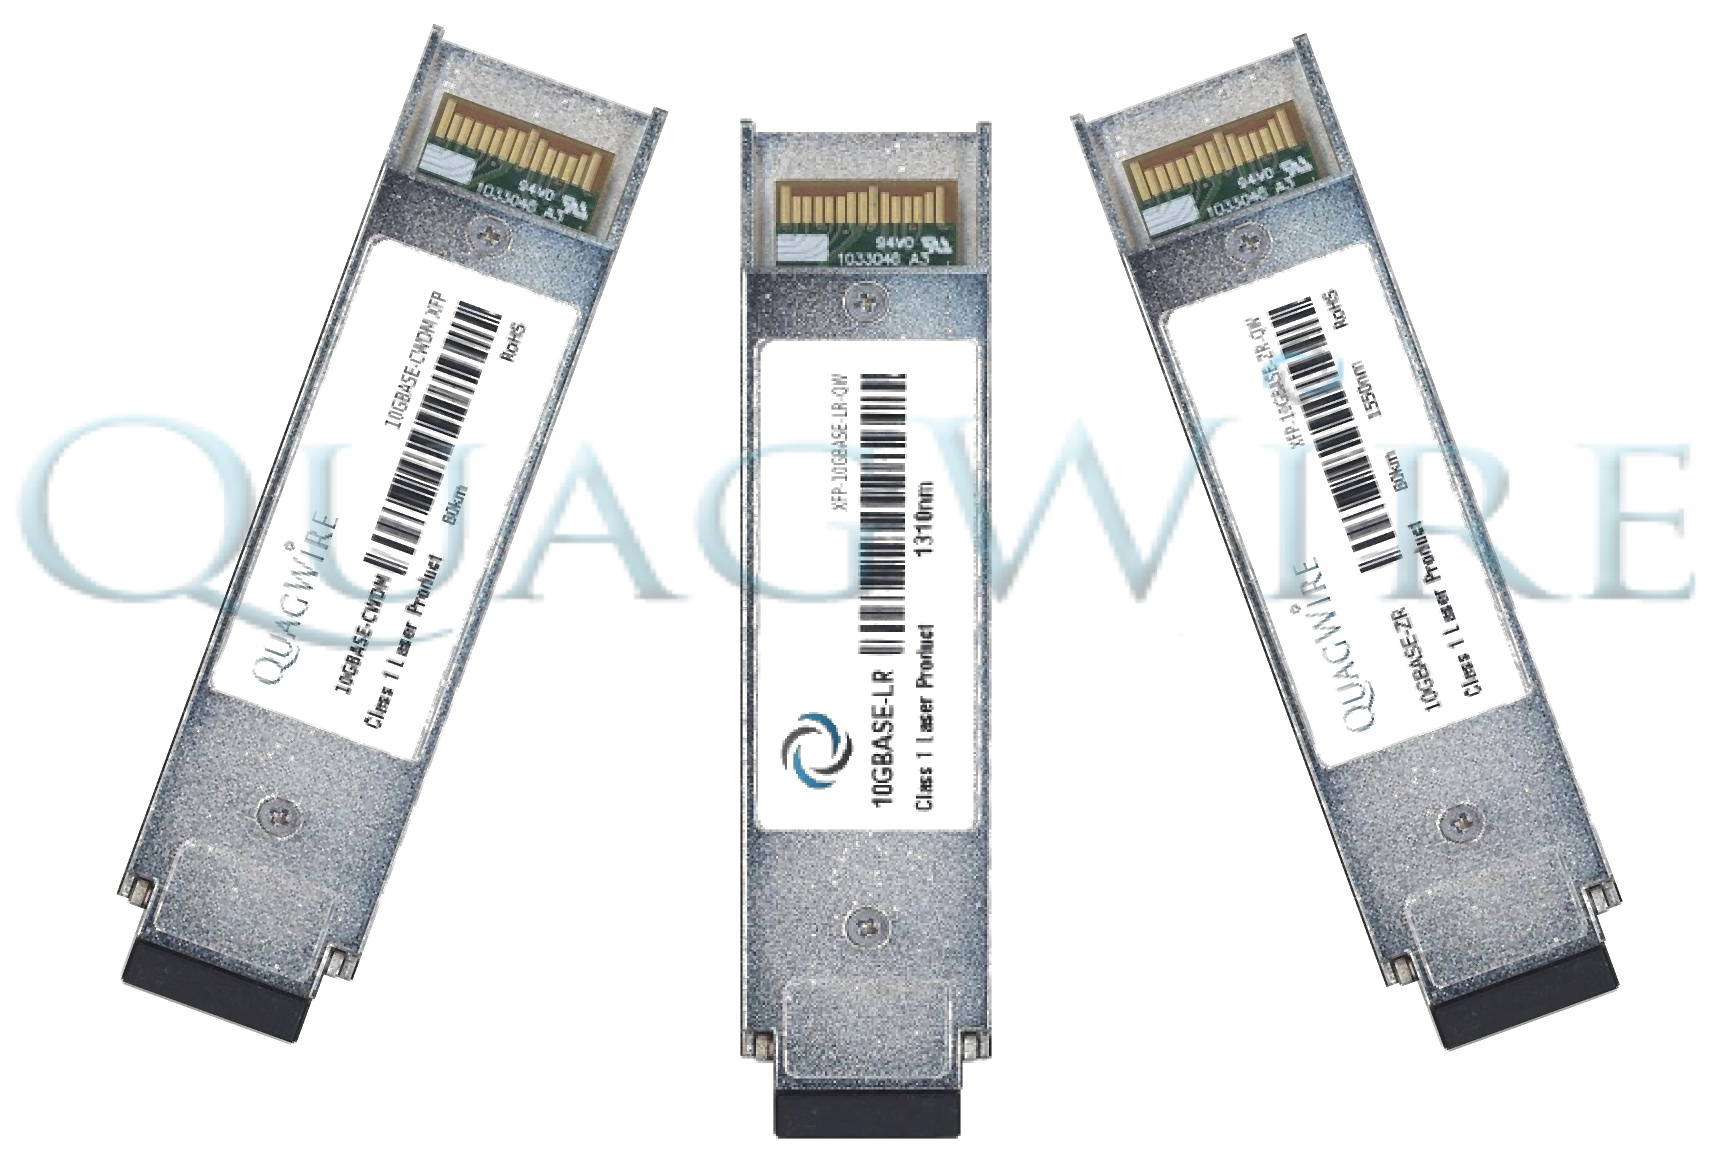 10G-XFP-ZR – Foundry Compatible 10GBASE-ZR XFP Transceiver